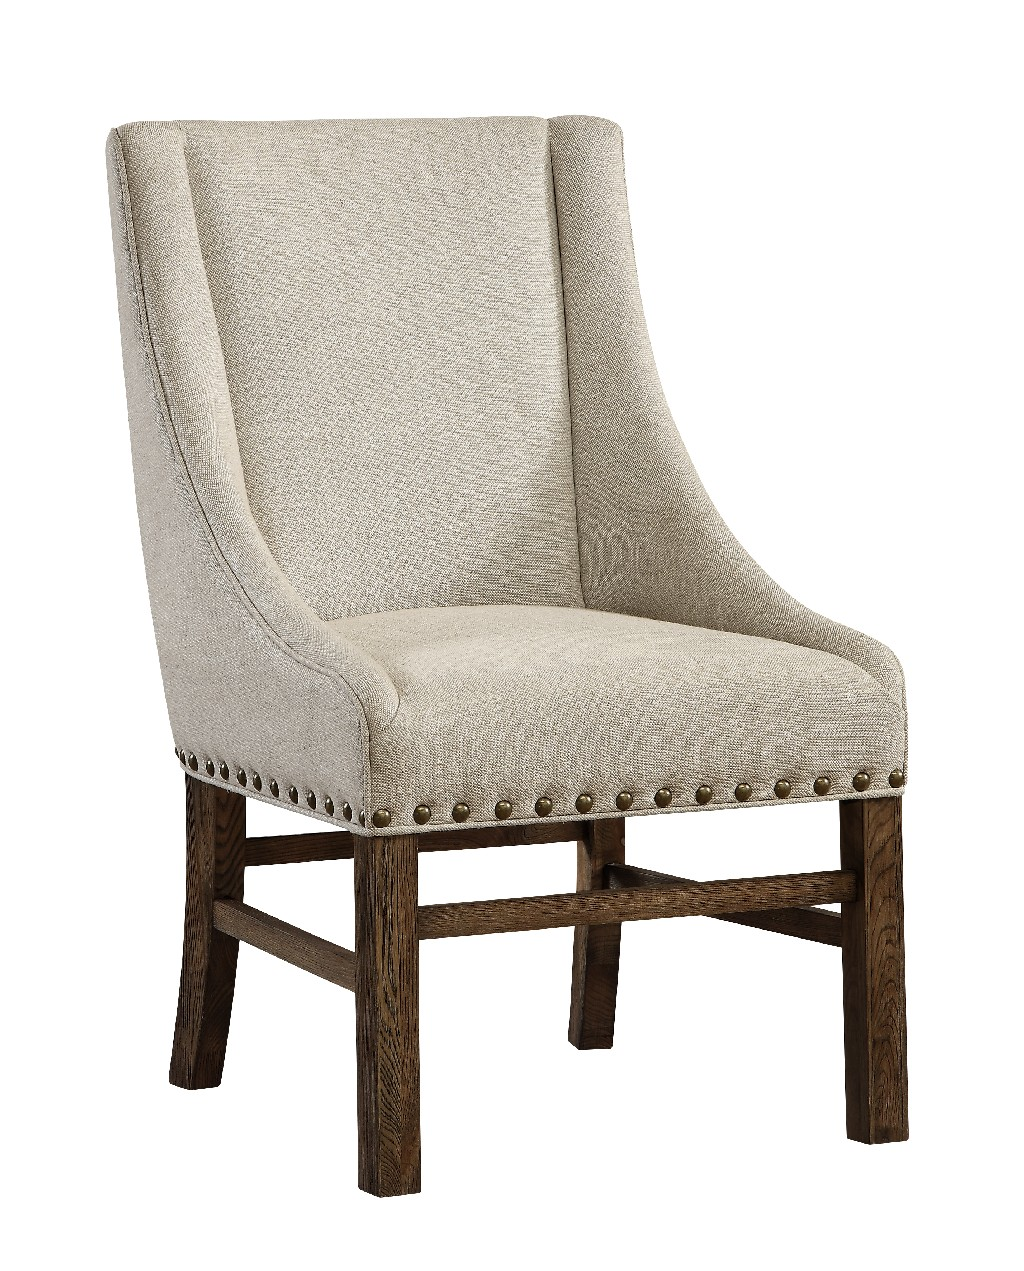 Accent Dining Chair - Coast to Coast Imports 48225